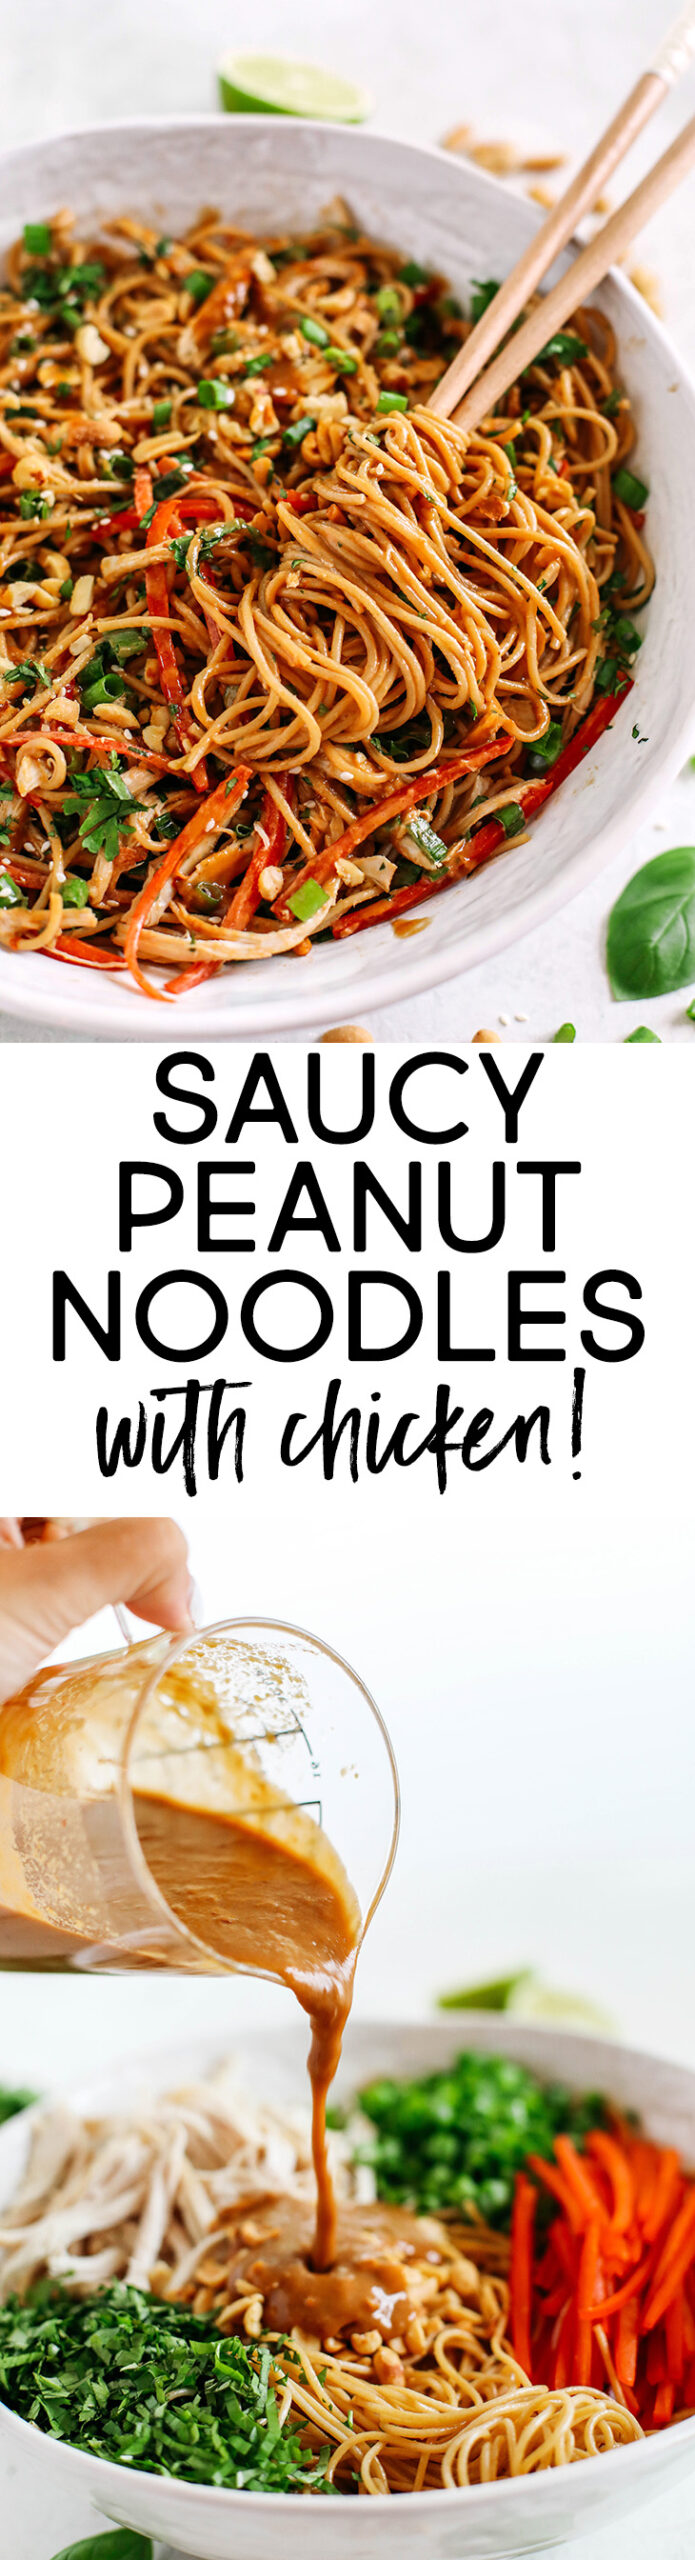 These Saucy Peanut Noodles are loaded with shredded chicken, bell pepper, green onions, crunchy peanuts and fresh herbs all tossed together in a delicious peanut sauce!